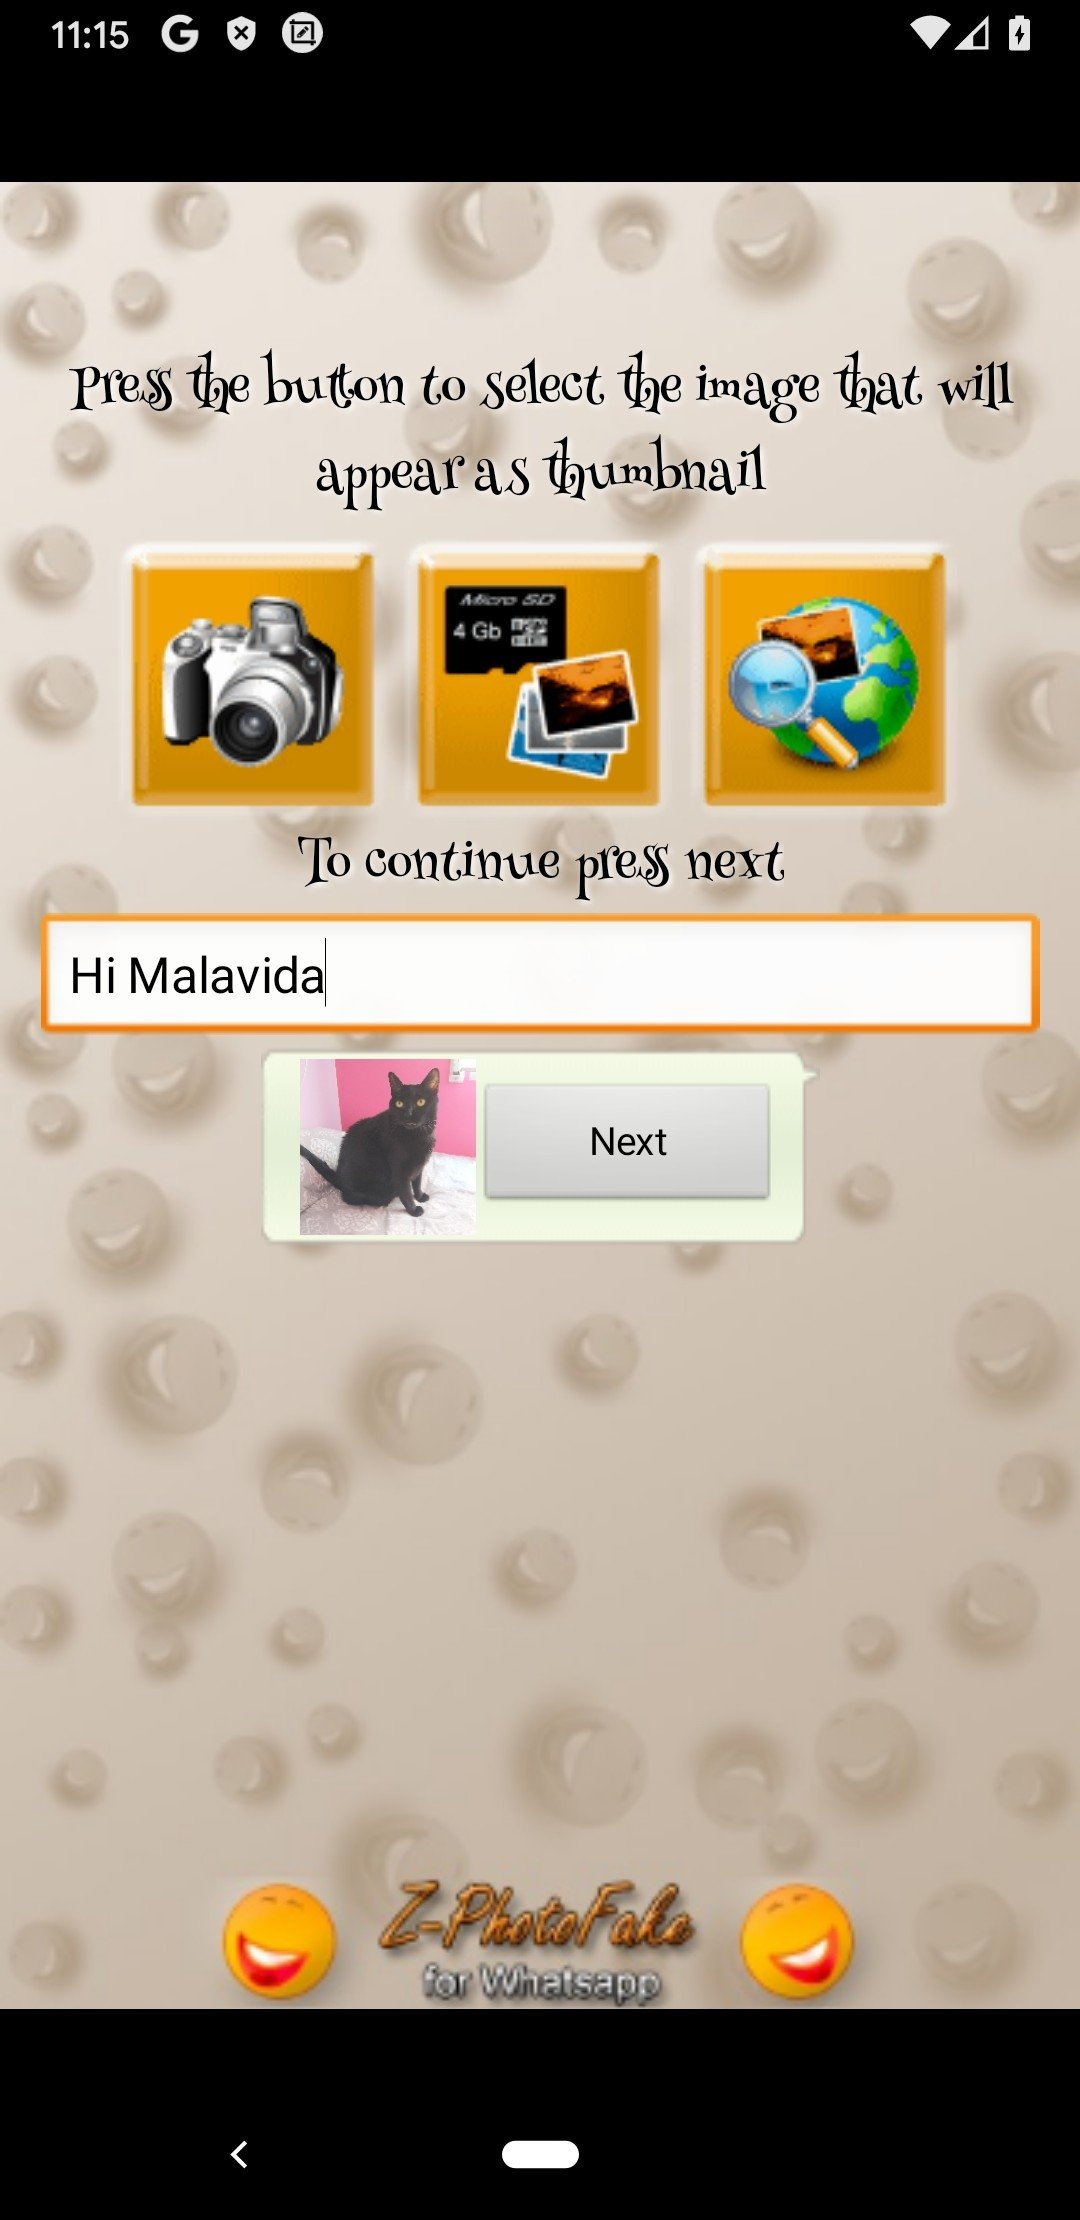 Z-Photo Fake for Chats Android image 5